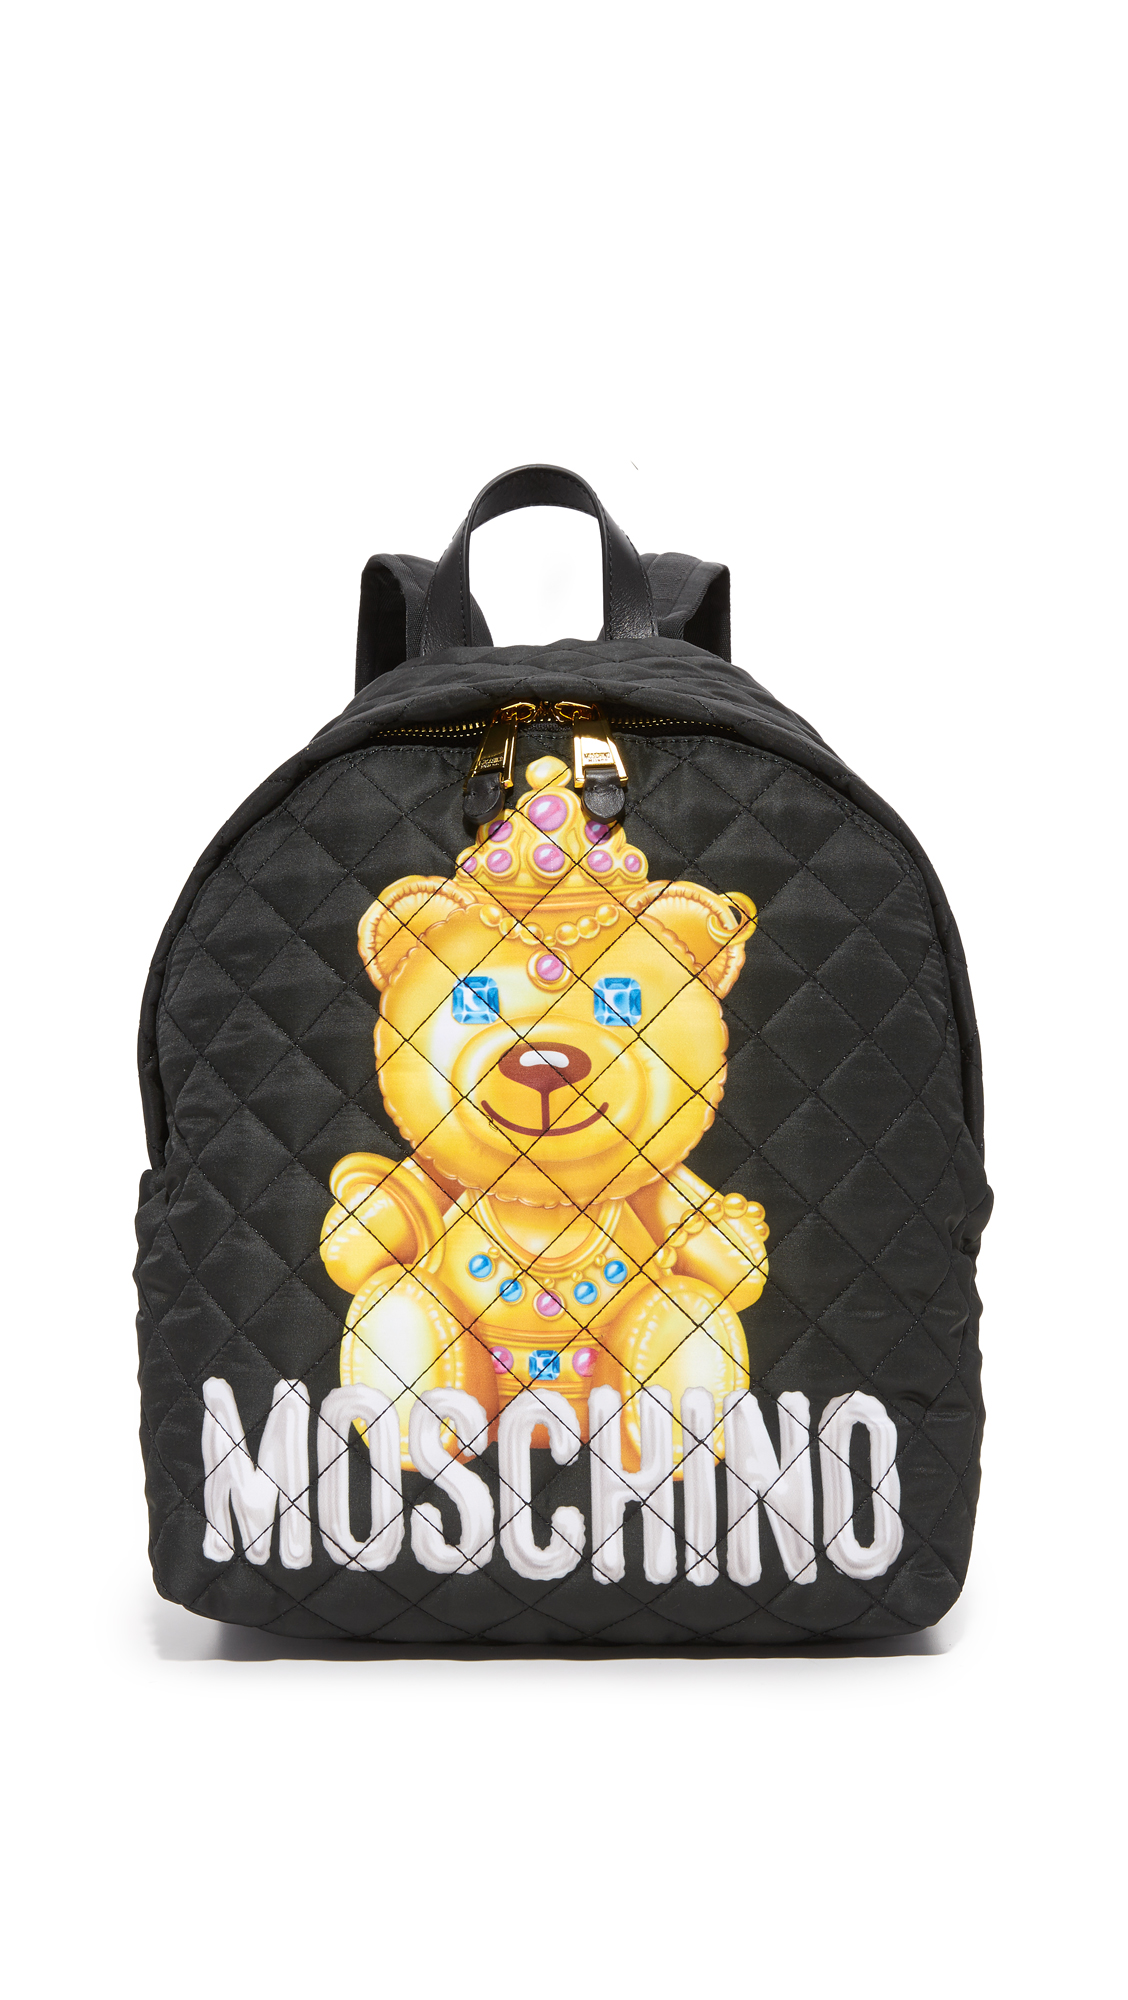 A quilted nylon Moschino backpack with a gilded teddy bear print across the front. The 2 way top zip opens to a satin lined, 3 pocket interior. Top loop and adjustable shoulder straps. Fabric: Quilted nylon. Weight: 20oz / 0.57